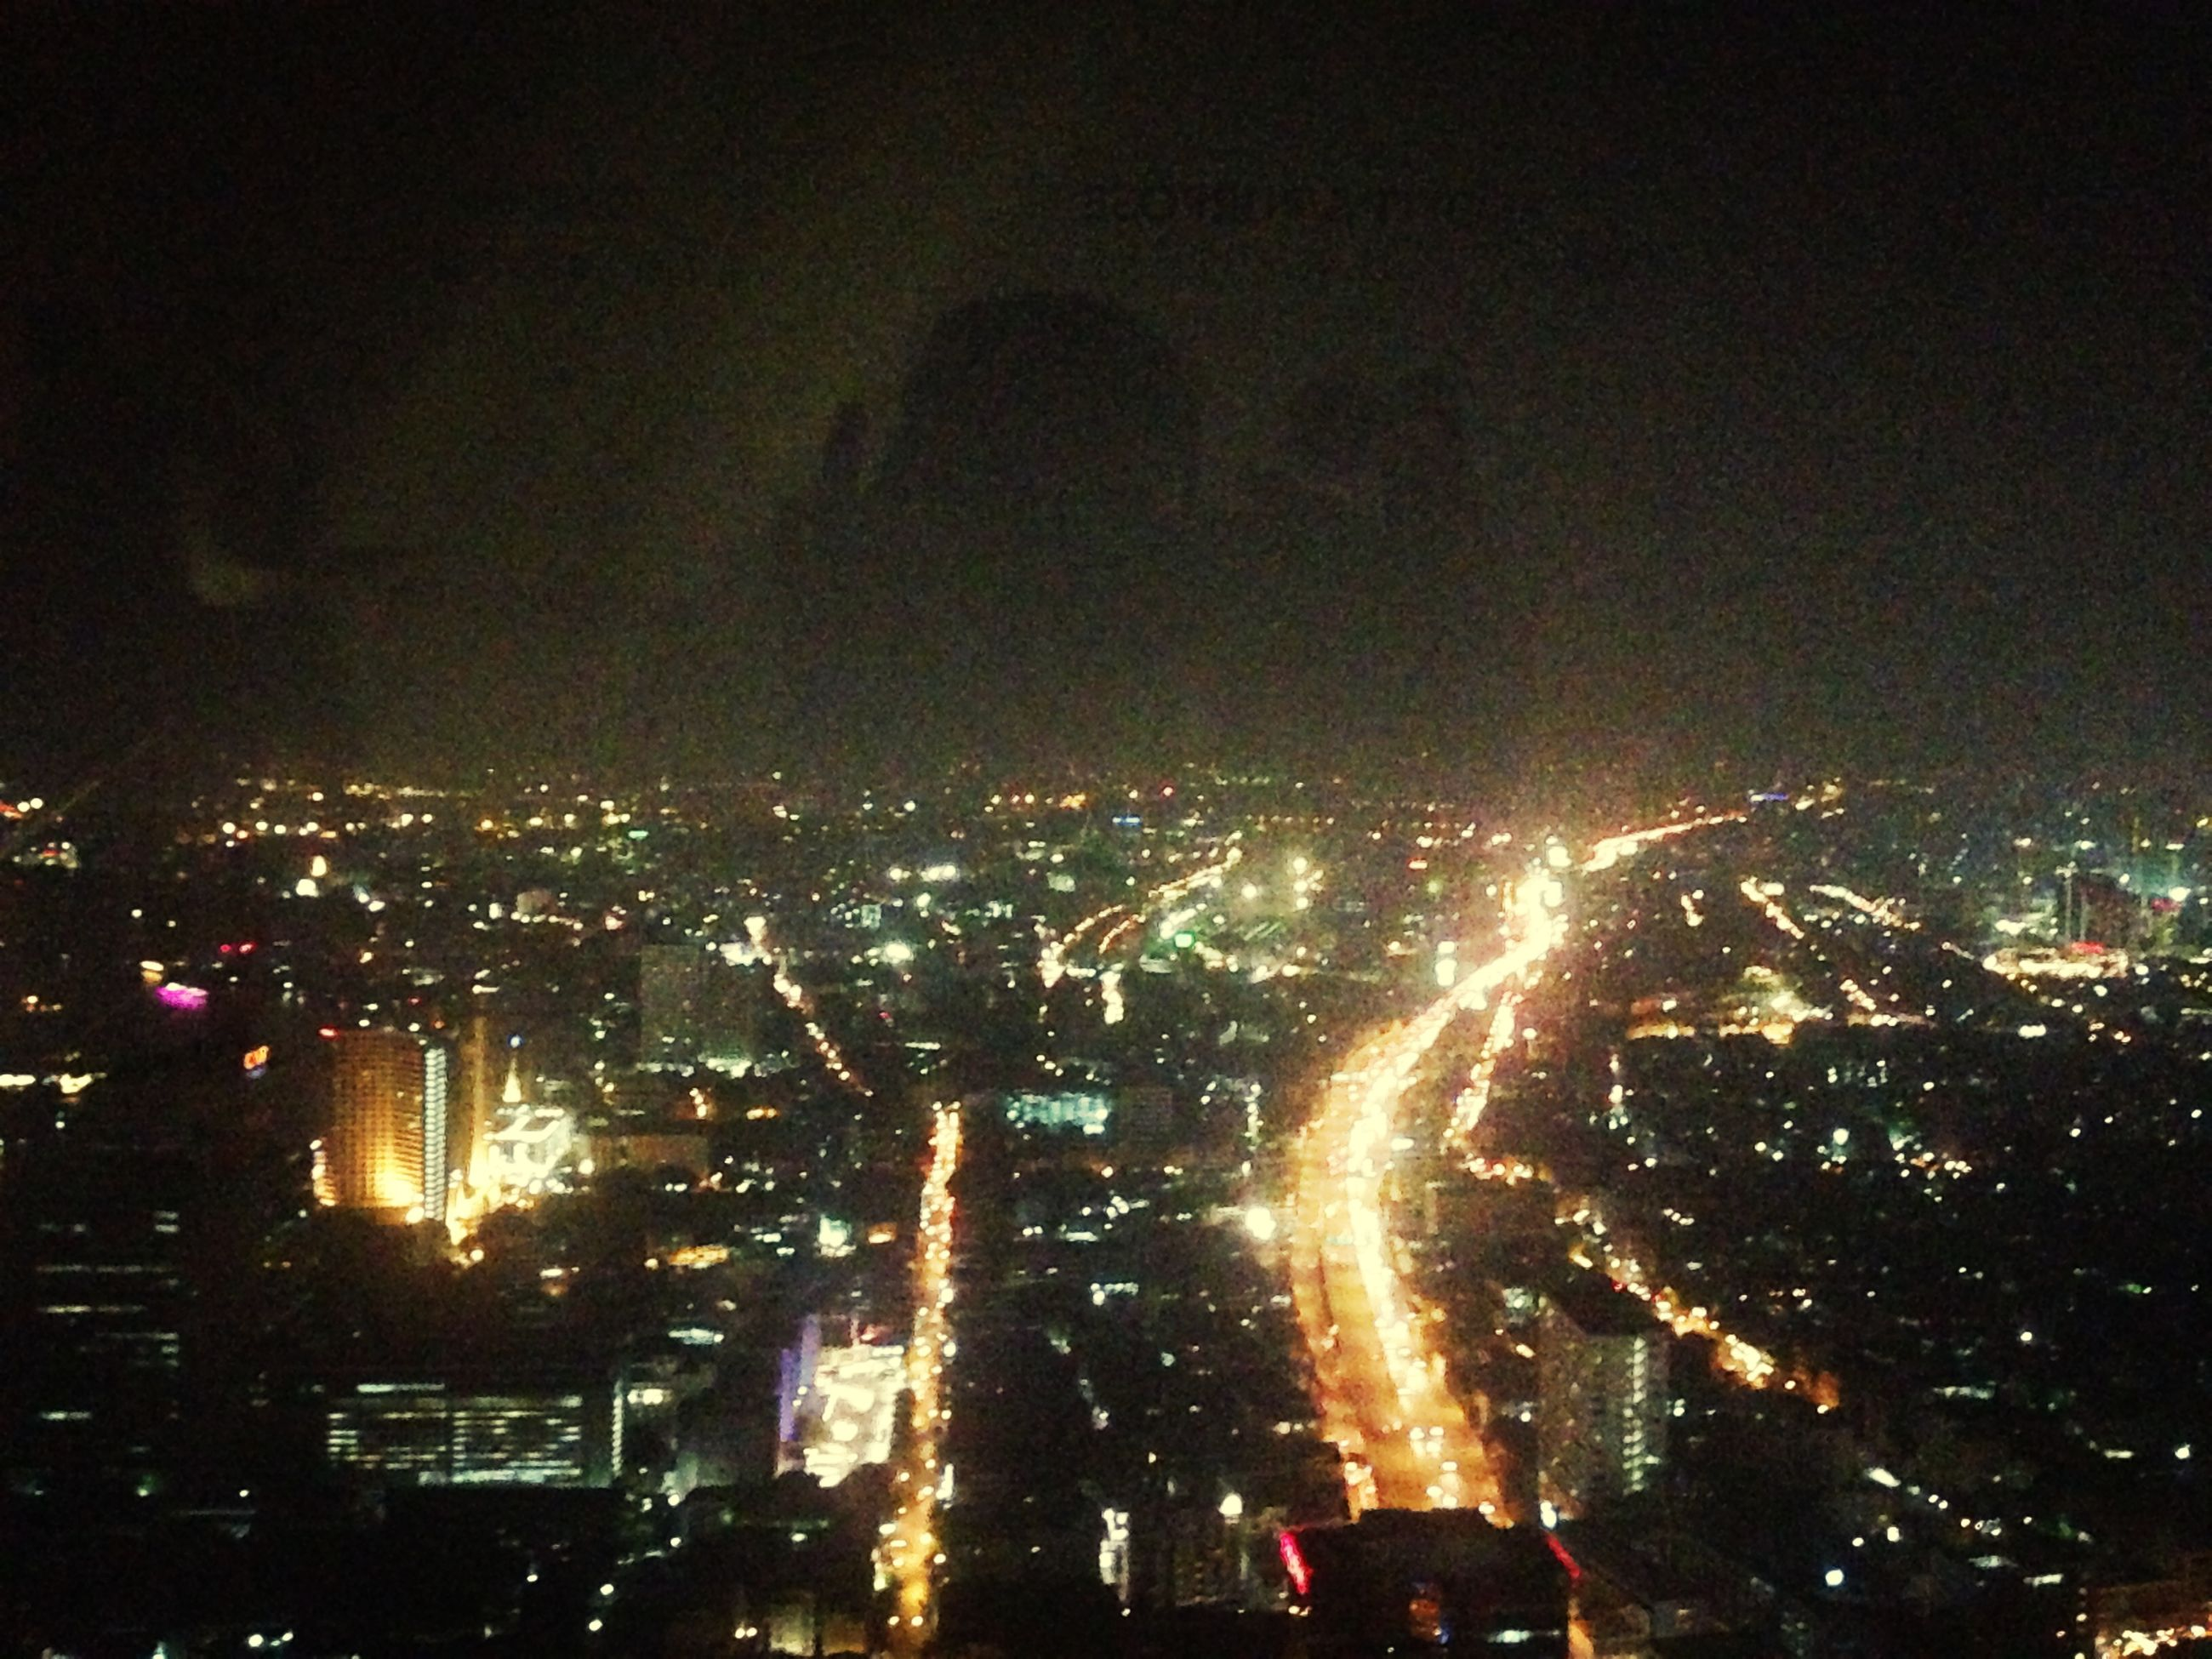 illuminated, night, cityscape, city, crowded, building exterior, architecture, built structure, high angle view, sky, aerial view, city life, residential district, dark, light - natural phenomenon, glowing, outdoors, residential building, skyscraper, residential structure